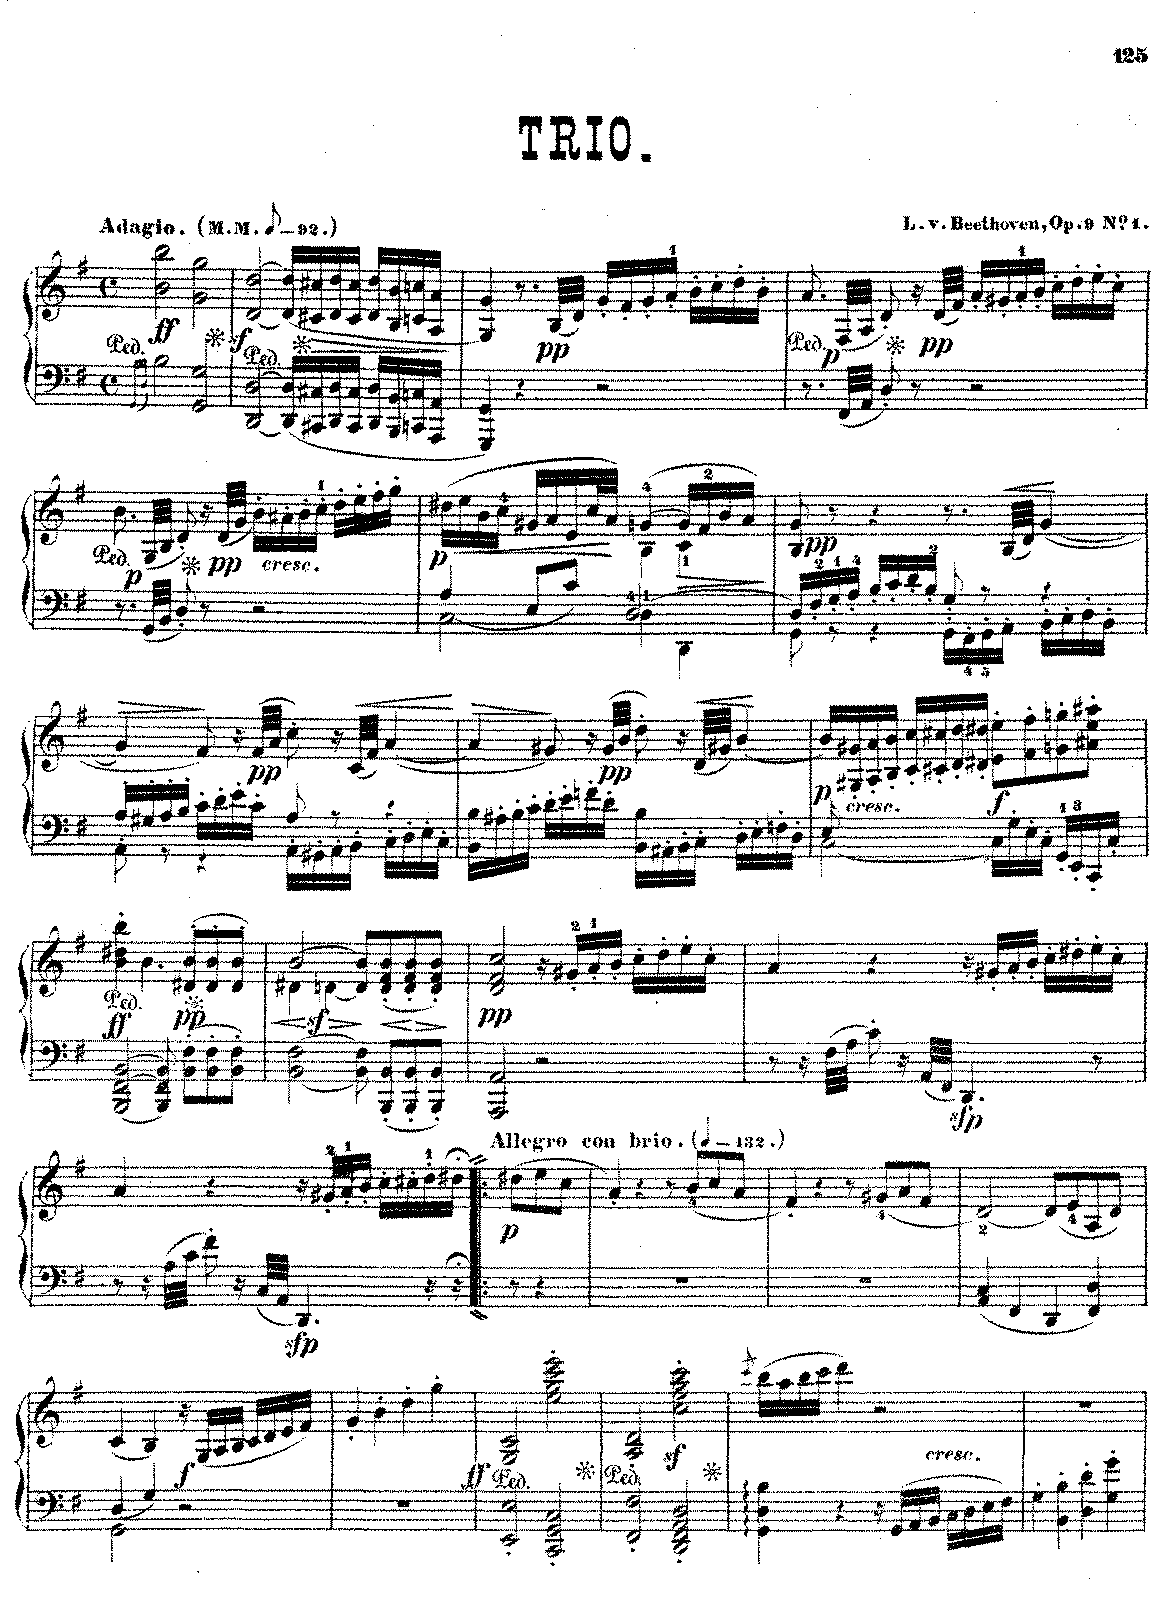 Beethoven-Winkler op09 Trio (piano solo).pdf